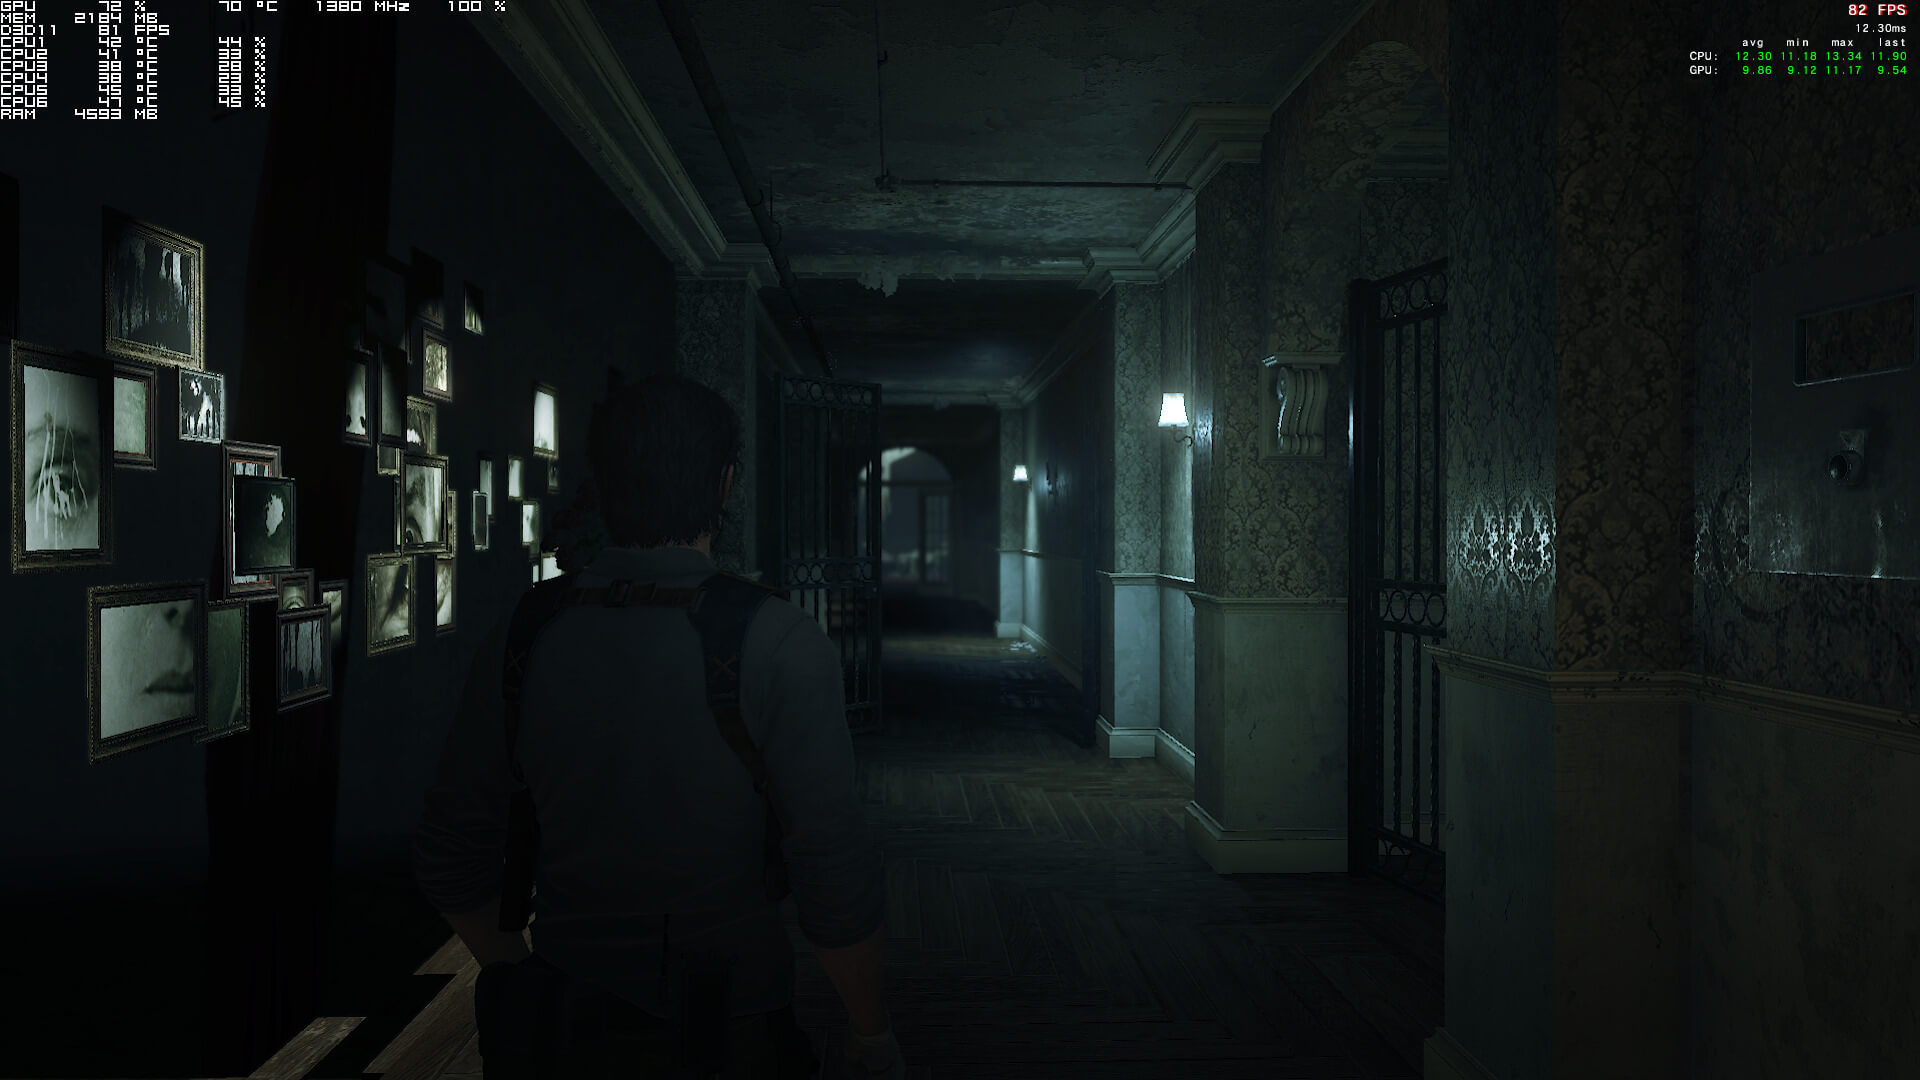 The Evil Within 2 PC Performance Analysis - DSOGaming